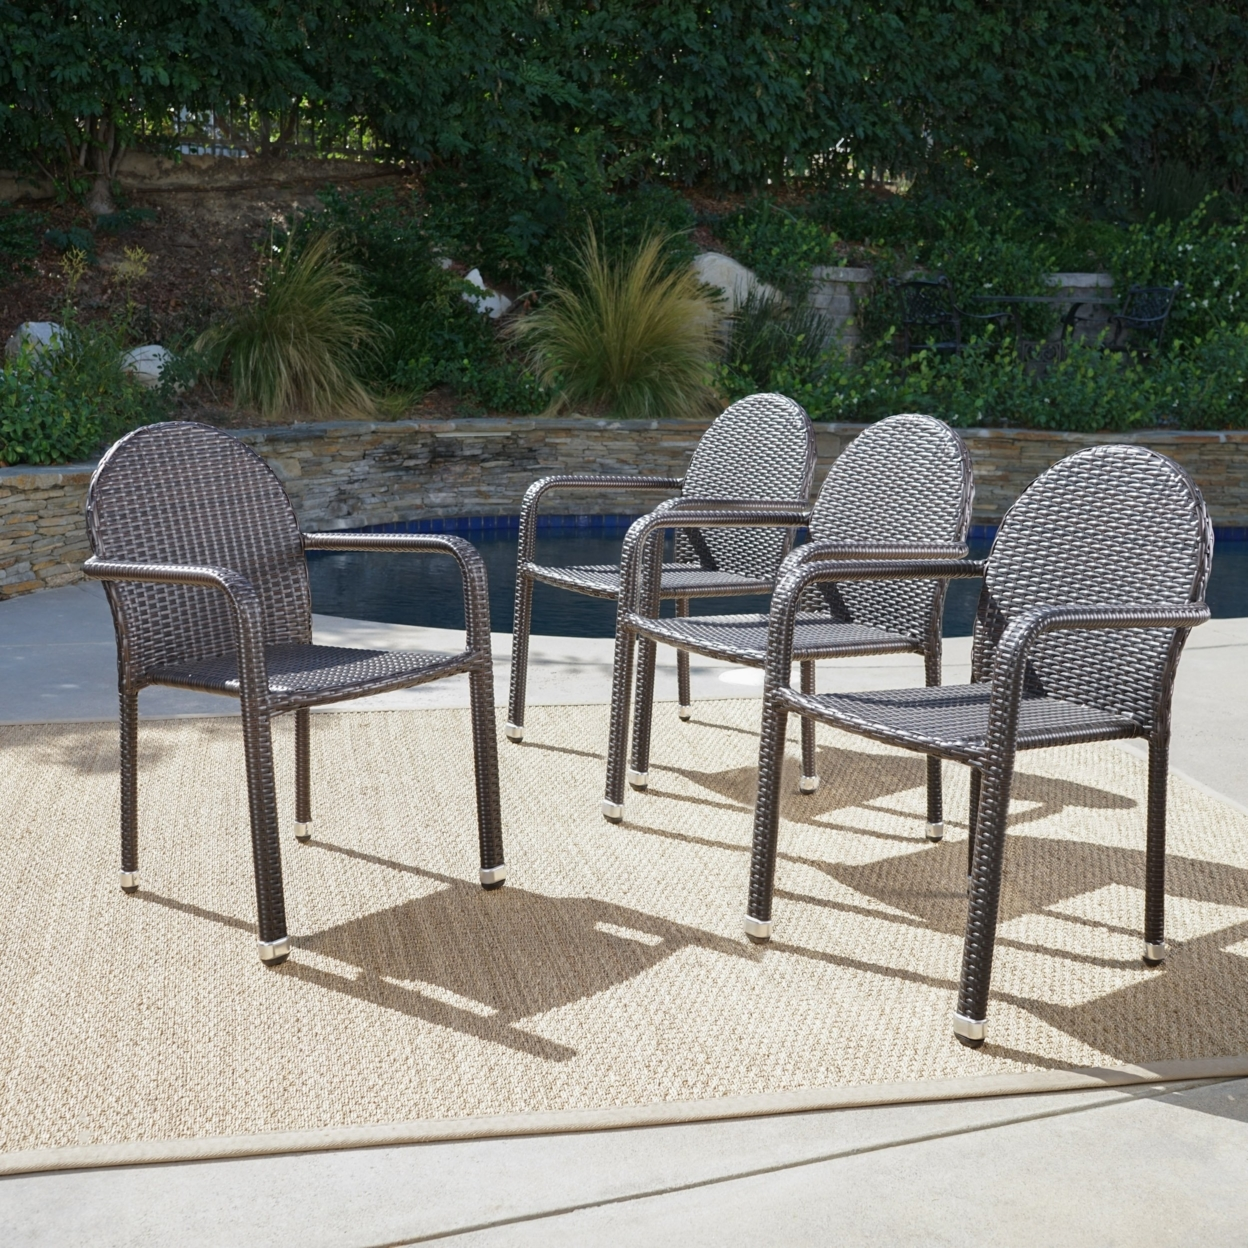 Angel outdoor wicker armed stack chairs with aluminum frame set of 4